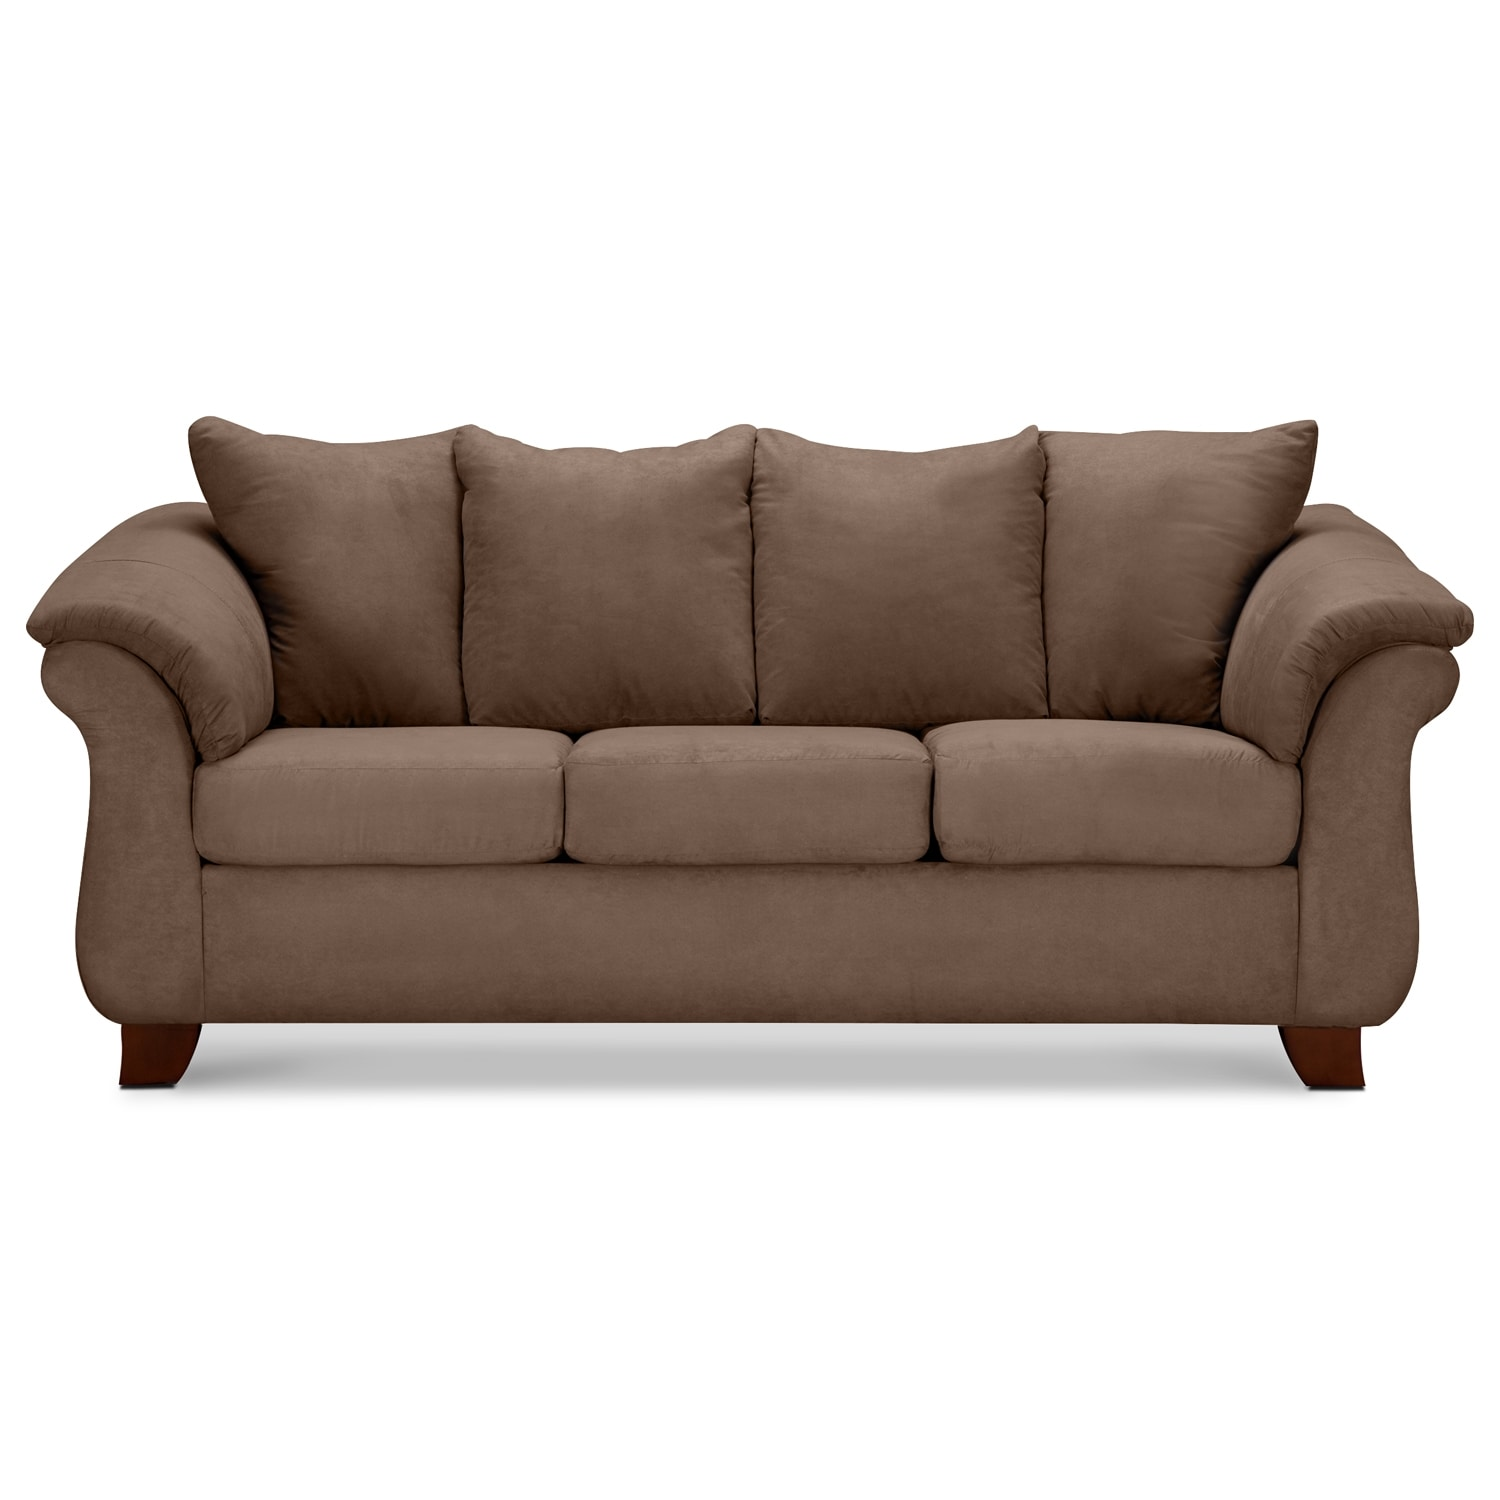 Adrian sofa taupe value city furniture Couches and loveseats